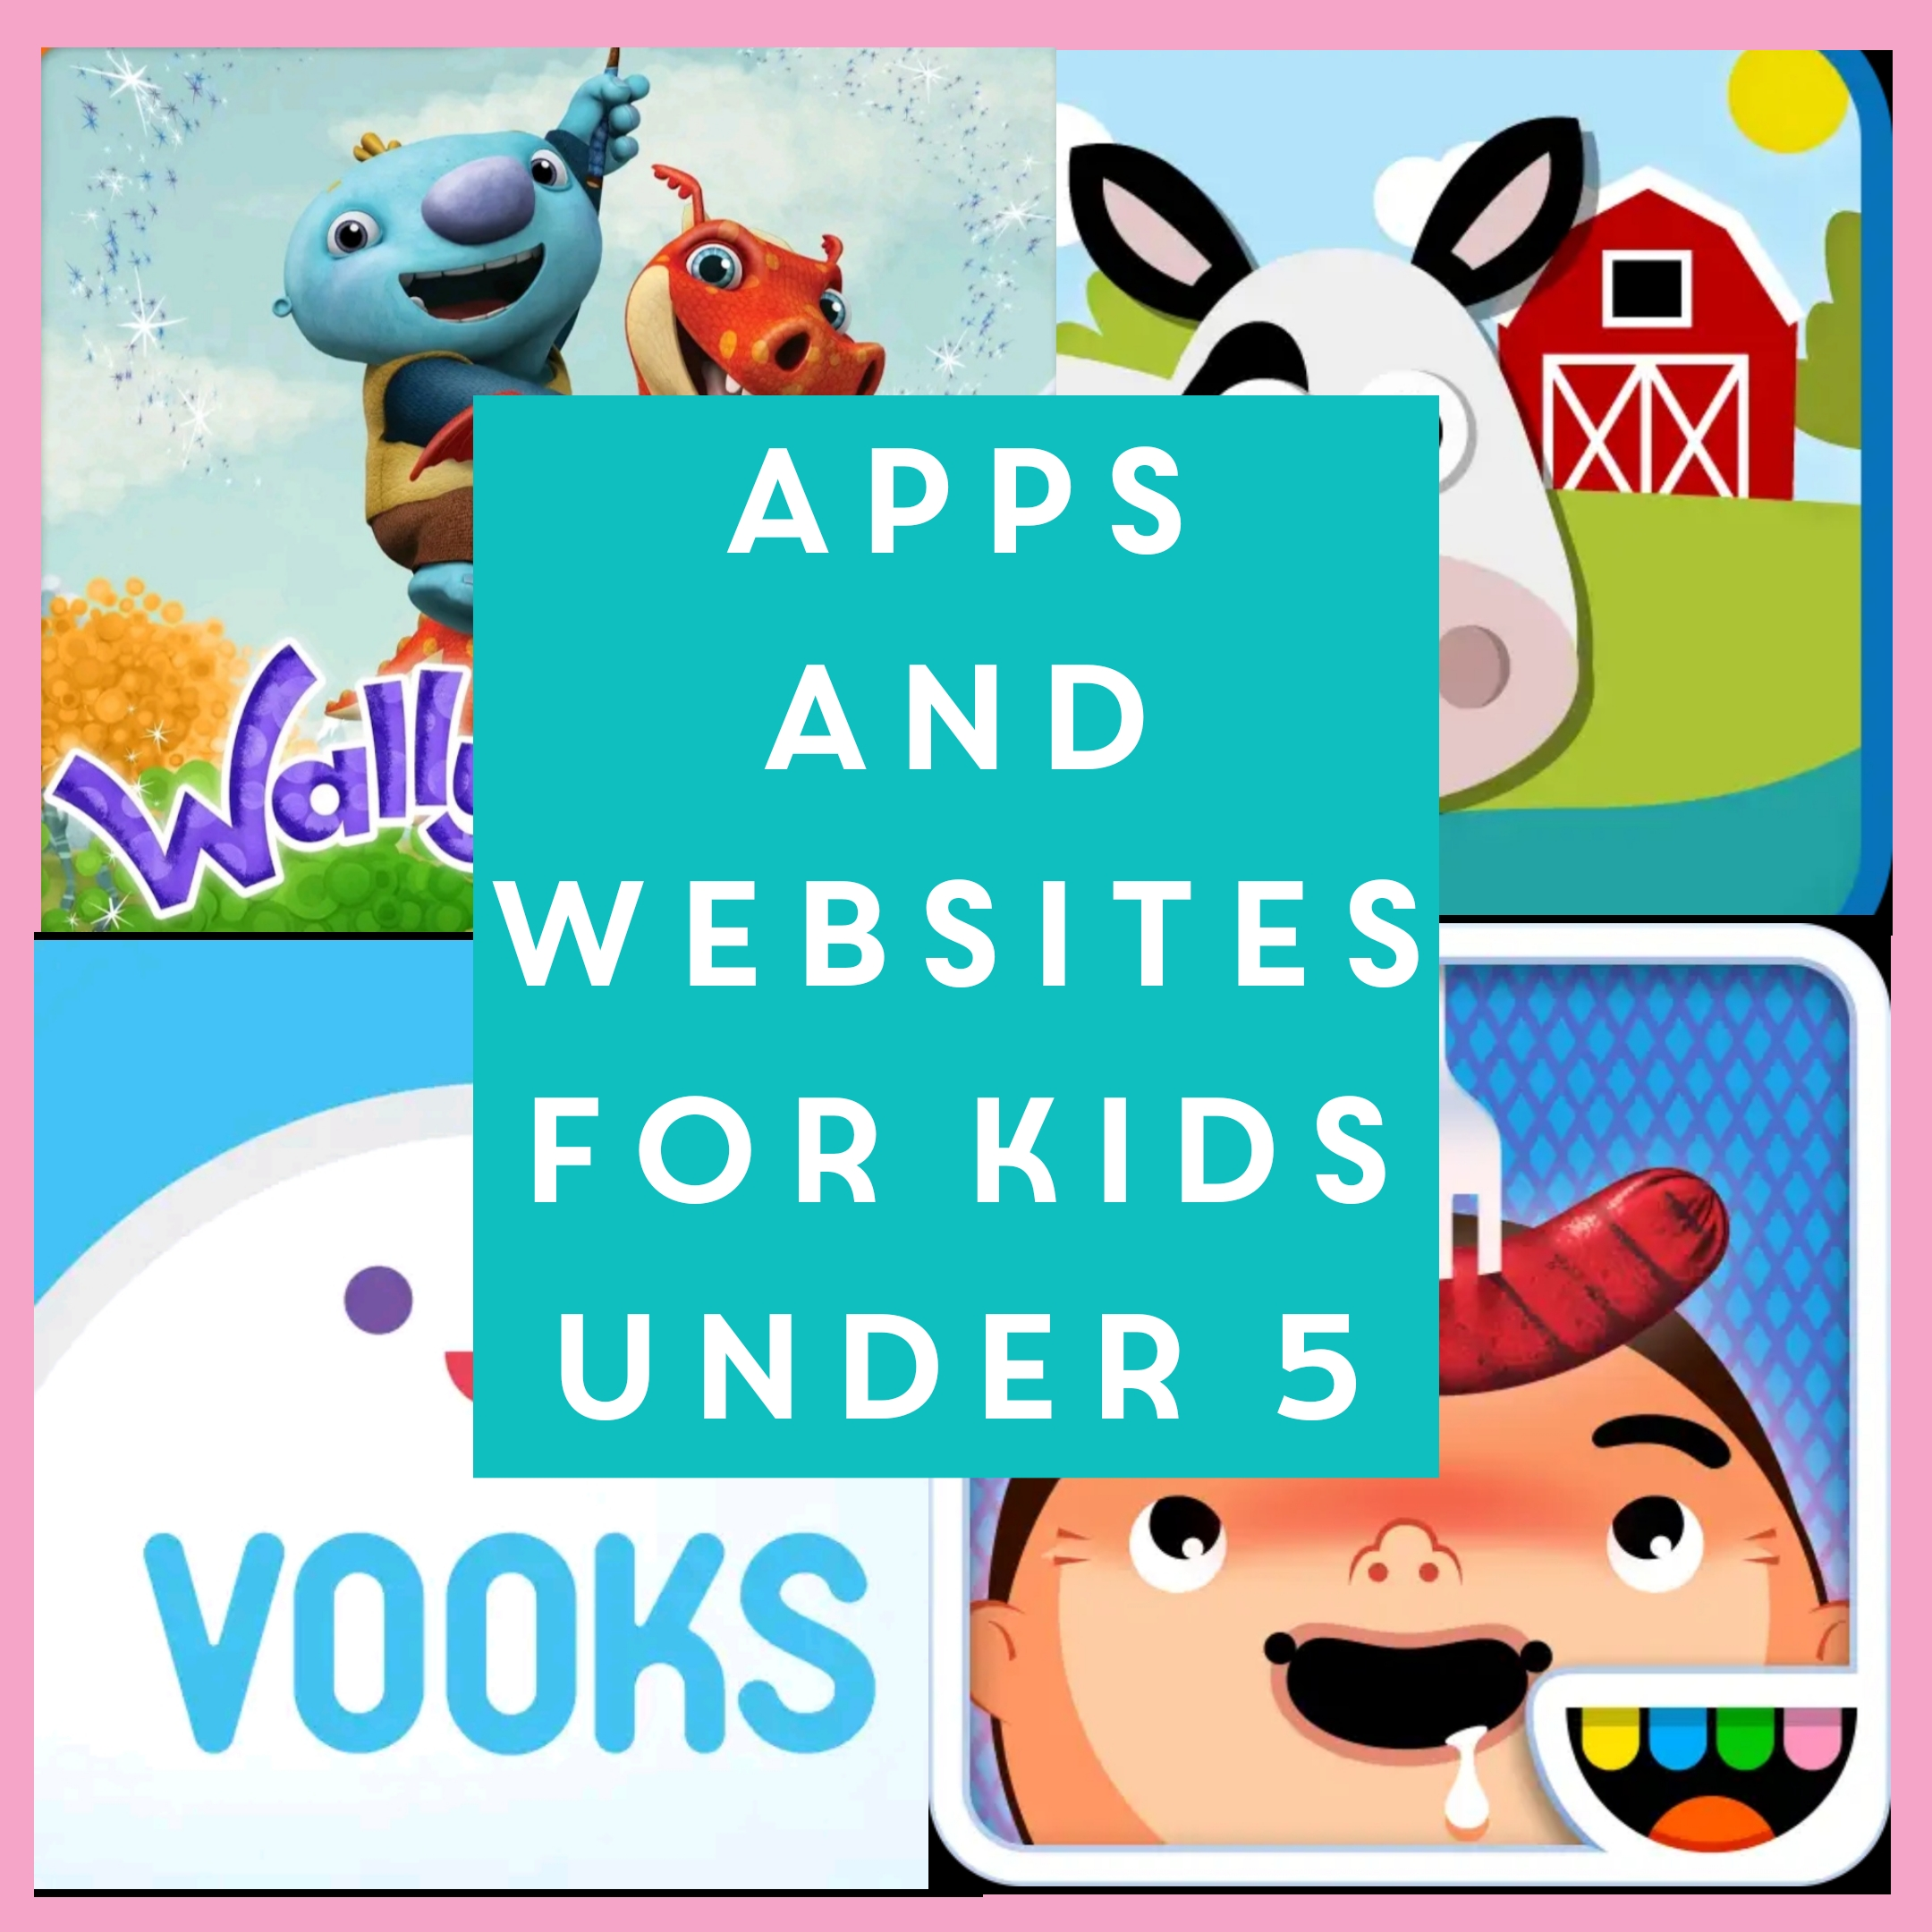 Apps and websites for kids under 5